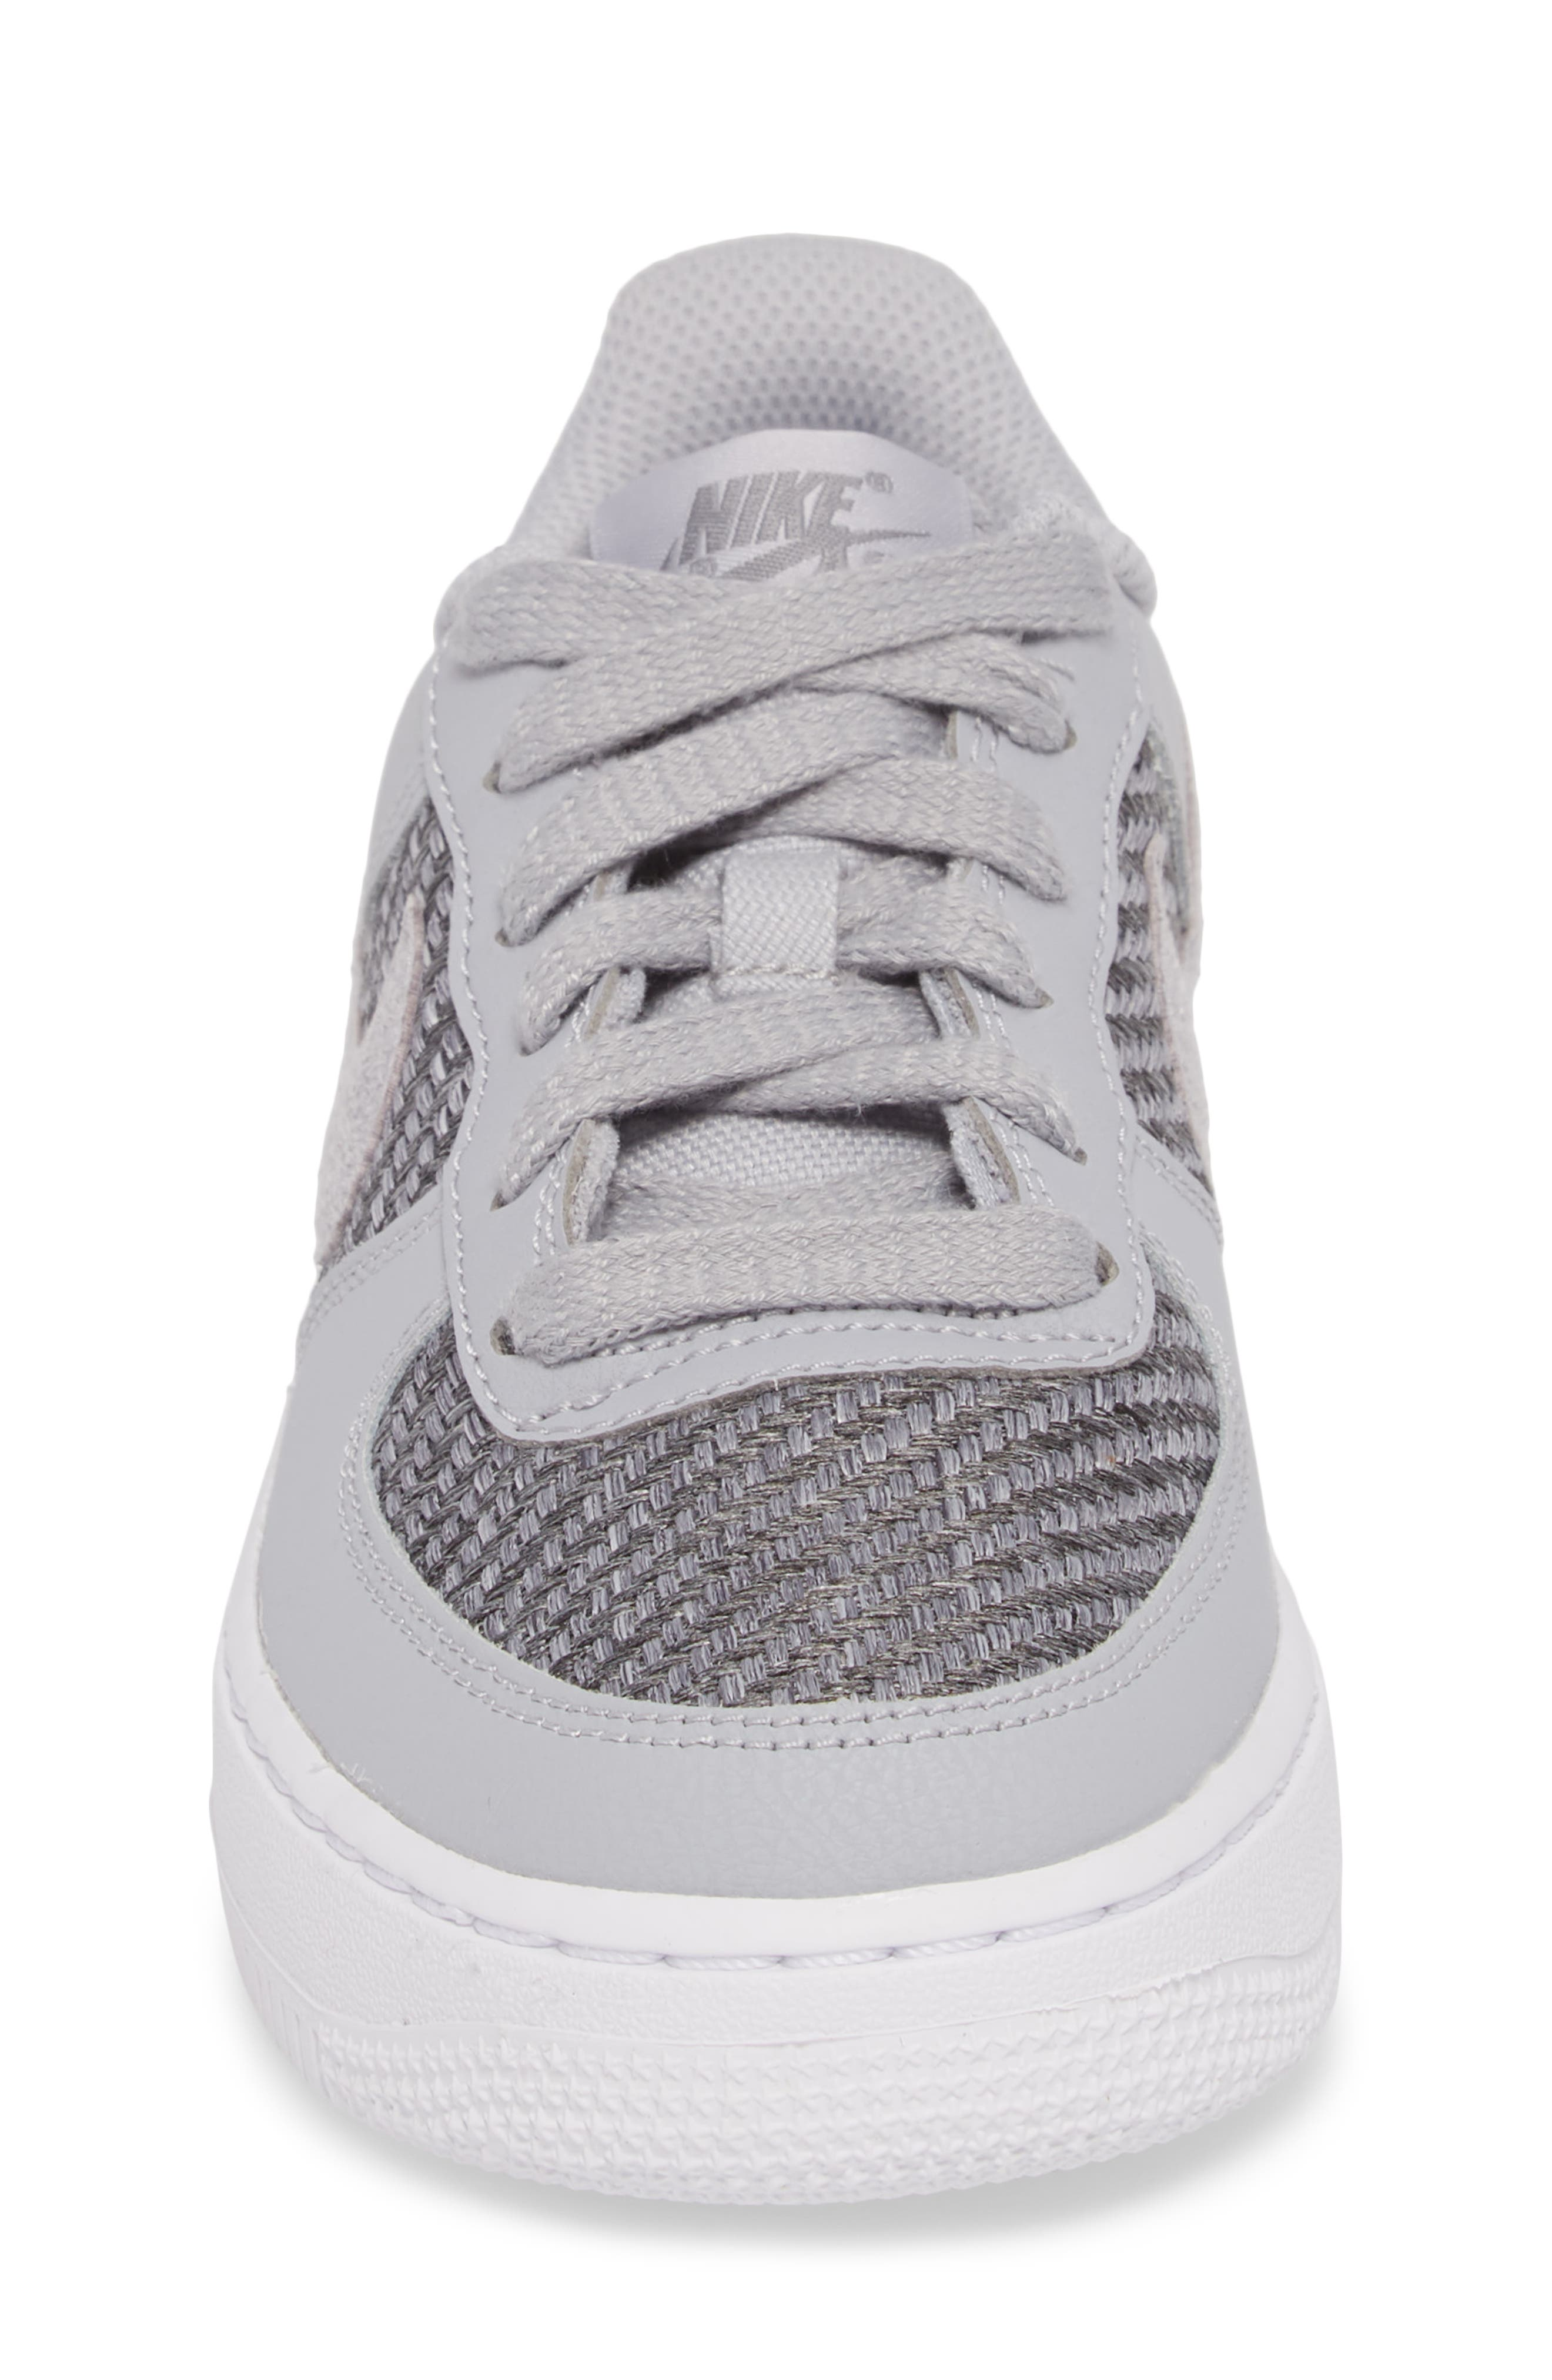 Air Force 1 LV8 Sneaker,                             Alternate thumbnail 4, color,                             Cool Grey/ White